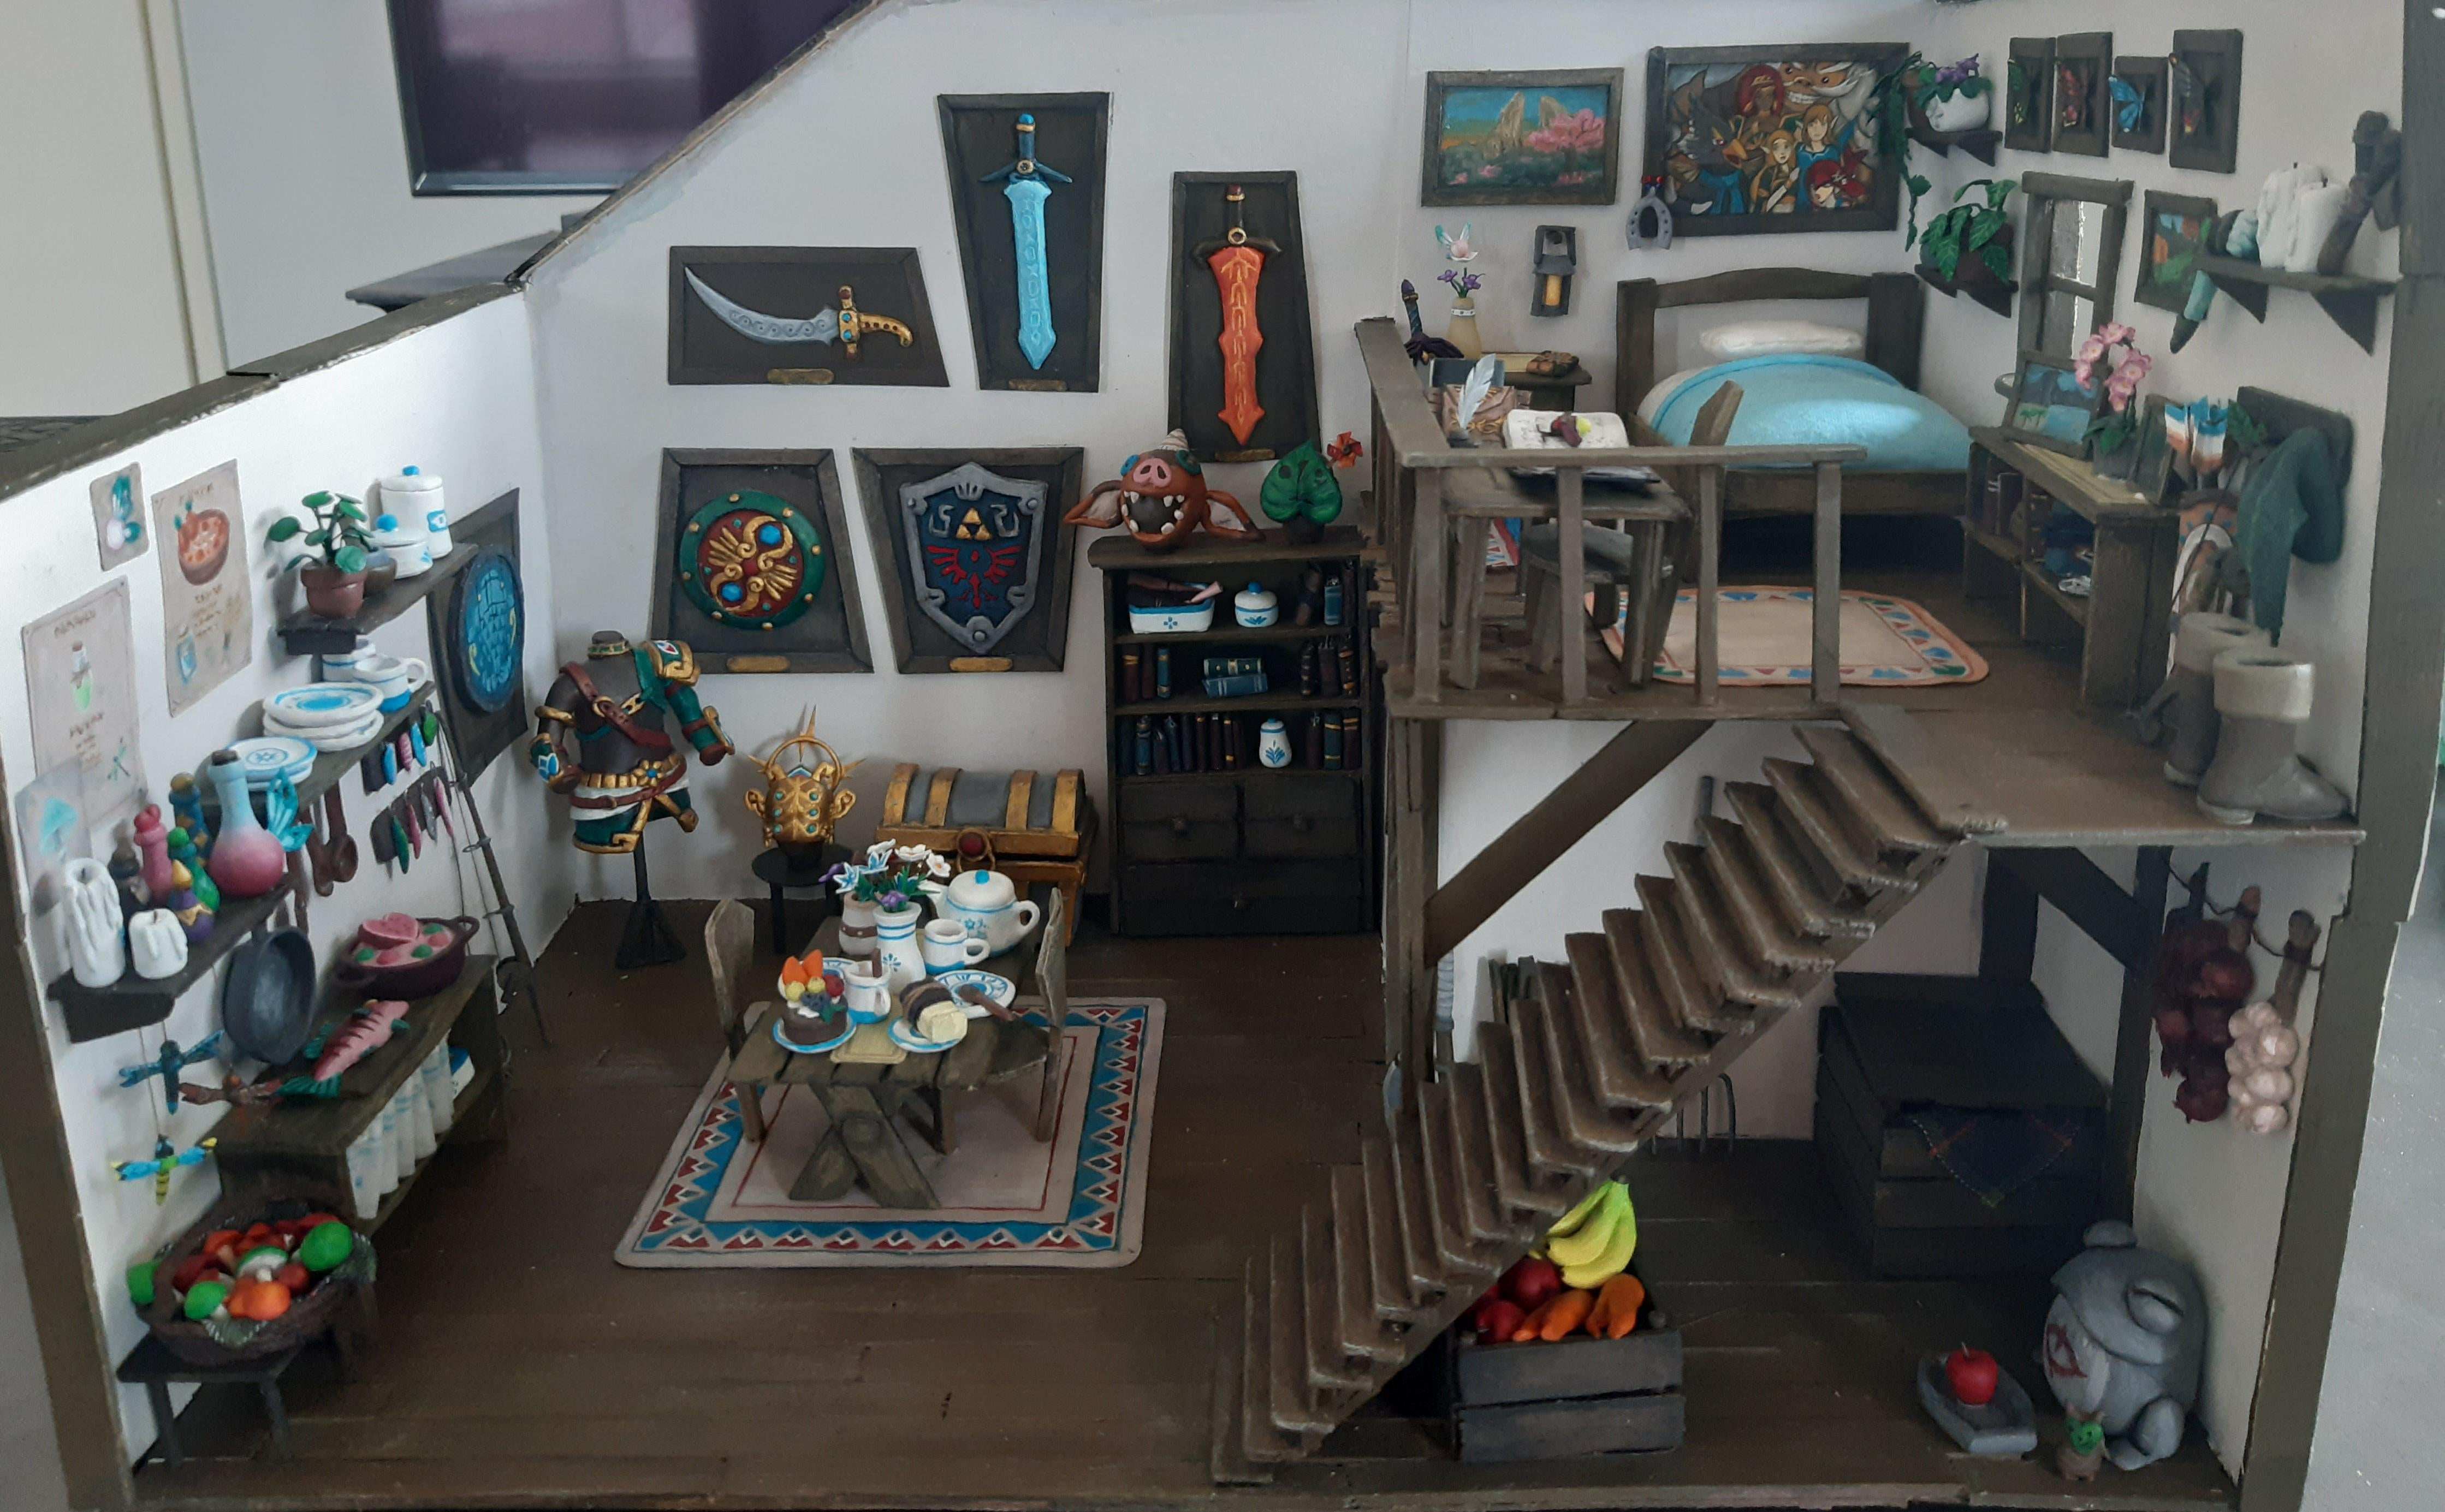 I want to live in this minature Zelda: Breath of the Wild Link house model screenshot